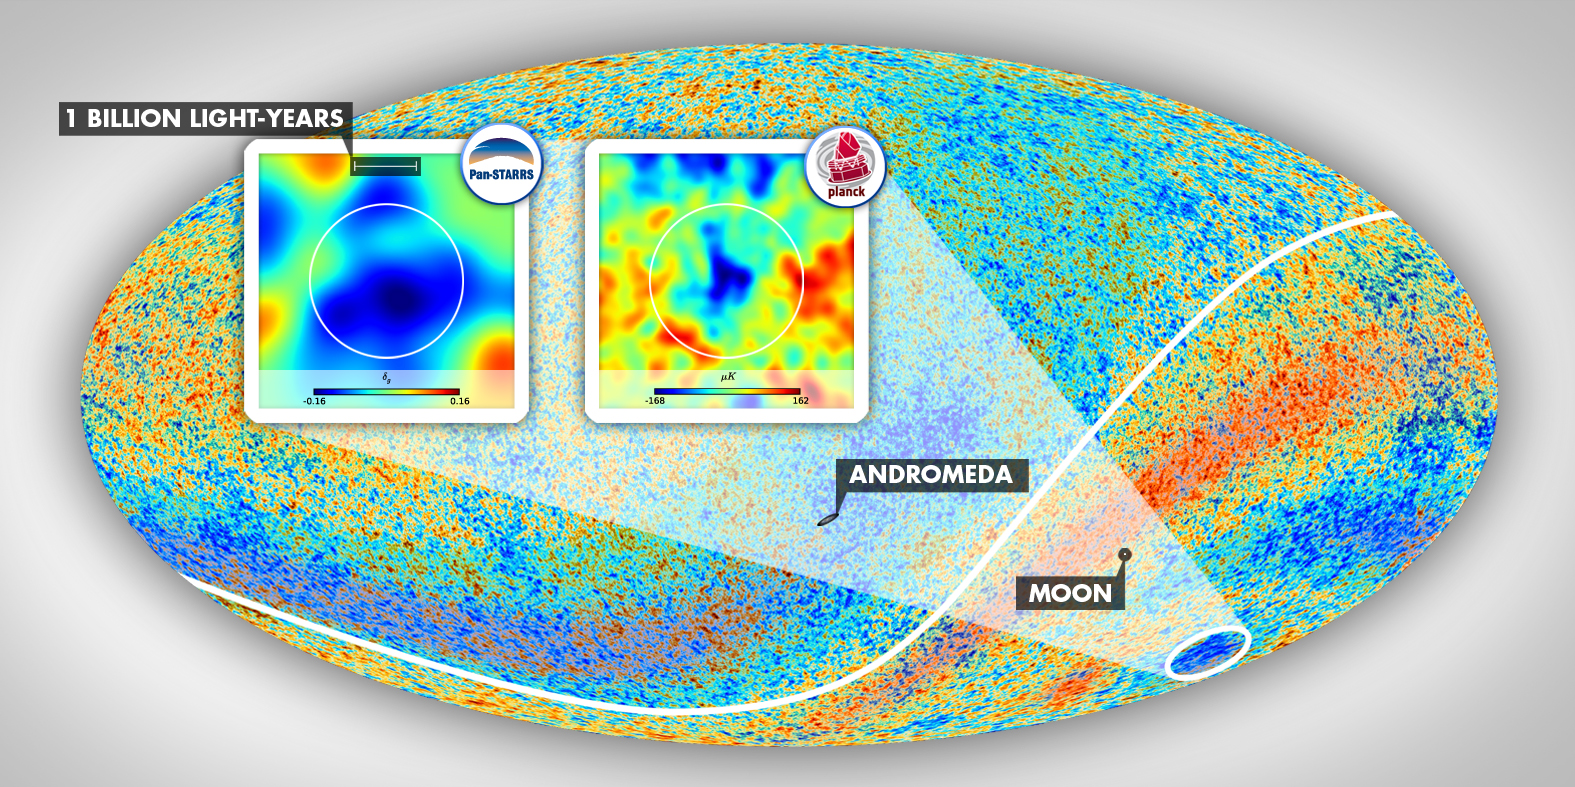 Cold cosmic mystery solved: Largest known structure in the universe leaves its imprint on CMB radiation